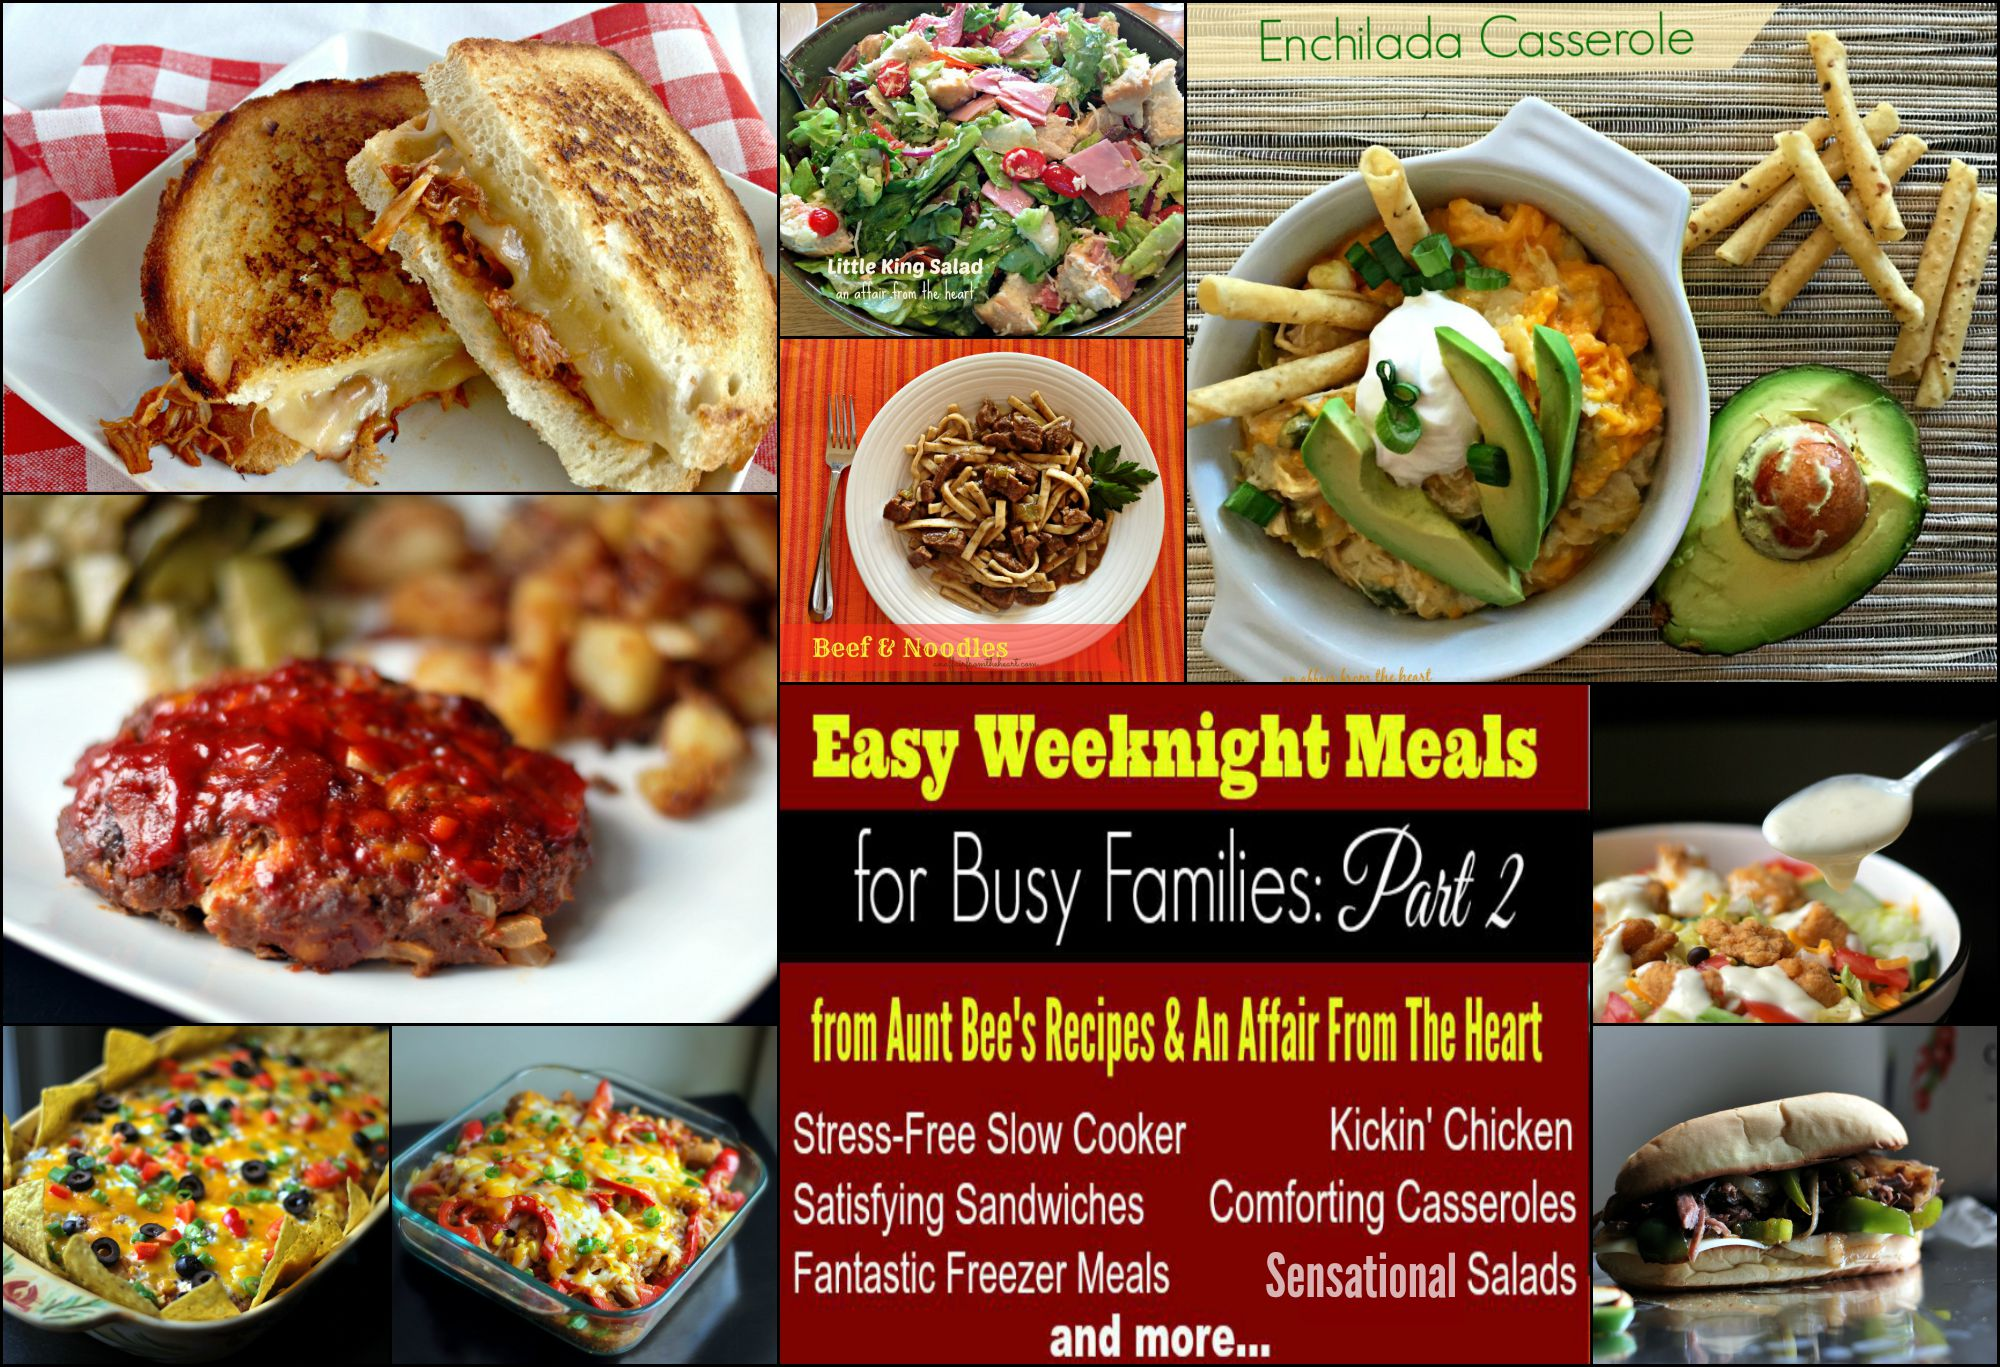 Easy Weeknight Meals For Busy Families: Part 2